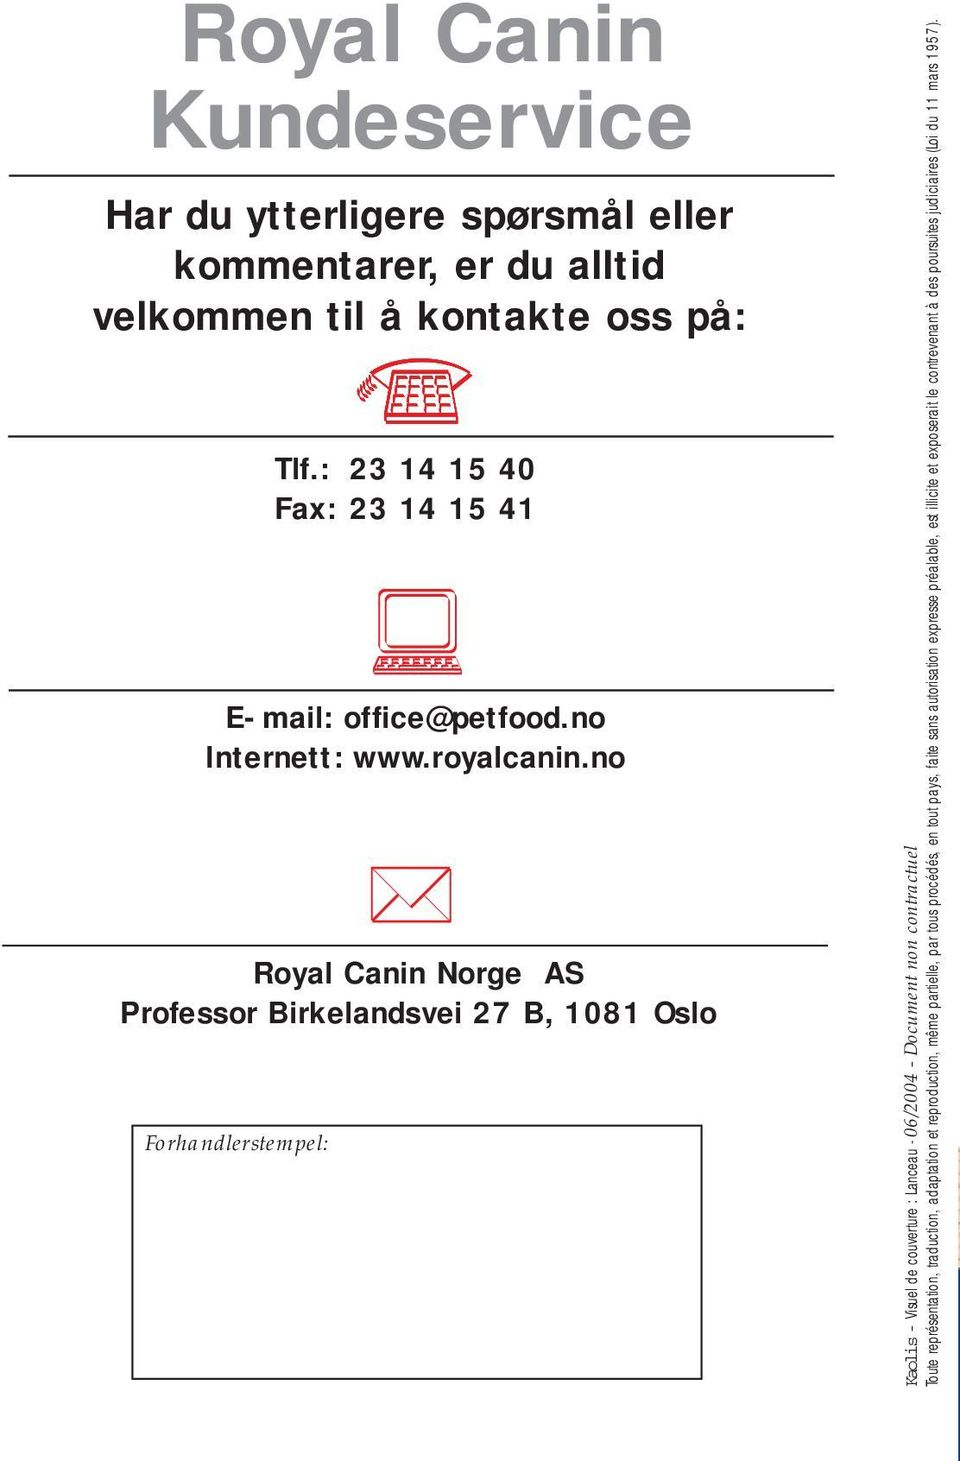 no Royal Canin Norge AS Professor Birkelandsvei 27 B, 1081 Oslo Forhandlerstempel: Kaolis - Visuel de couverture : Lanceau - 06/2004 - Document non